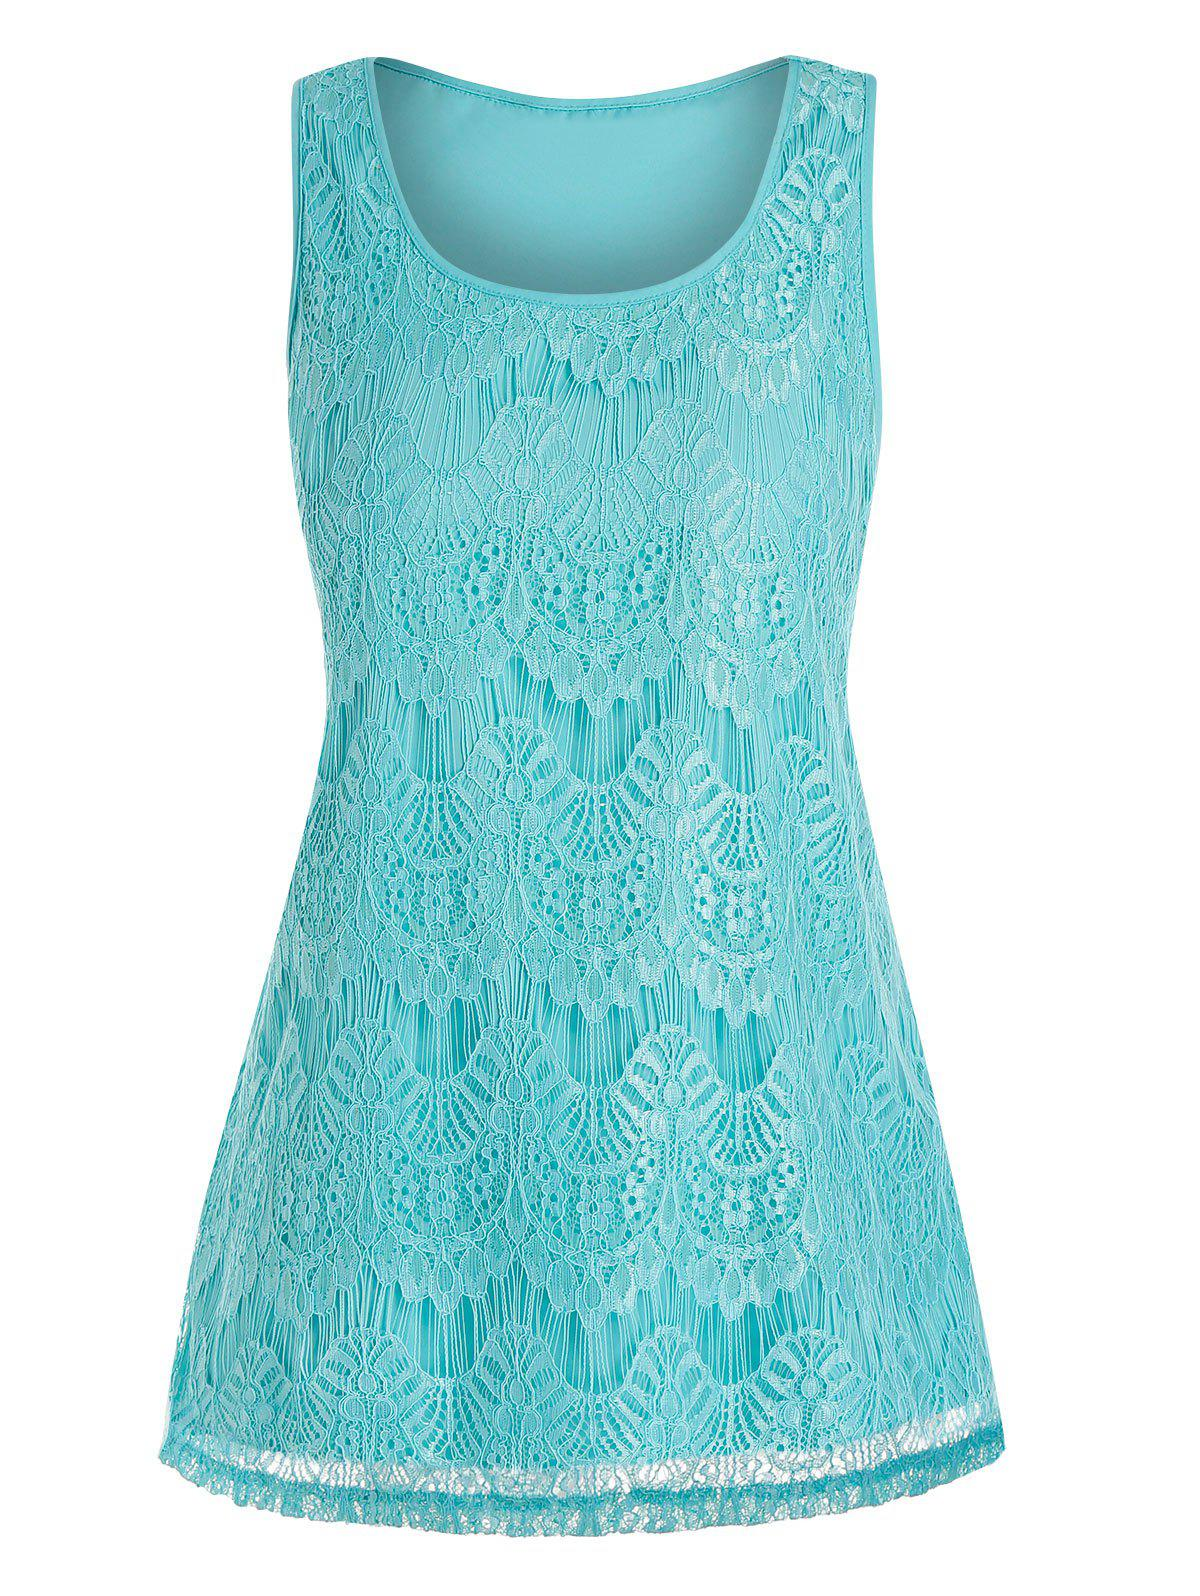 Lace Overlay Plus Size Tank Top - MACAW BLUE GREEN 5X